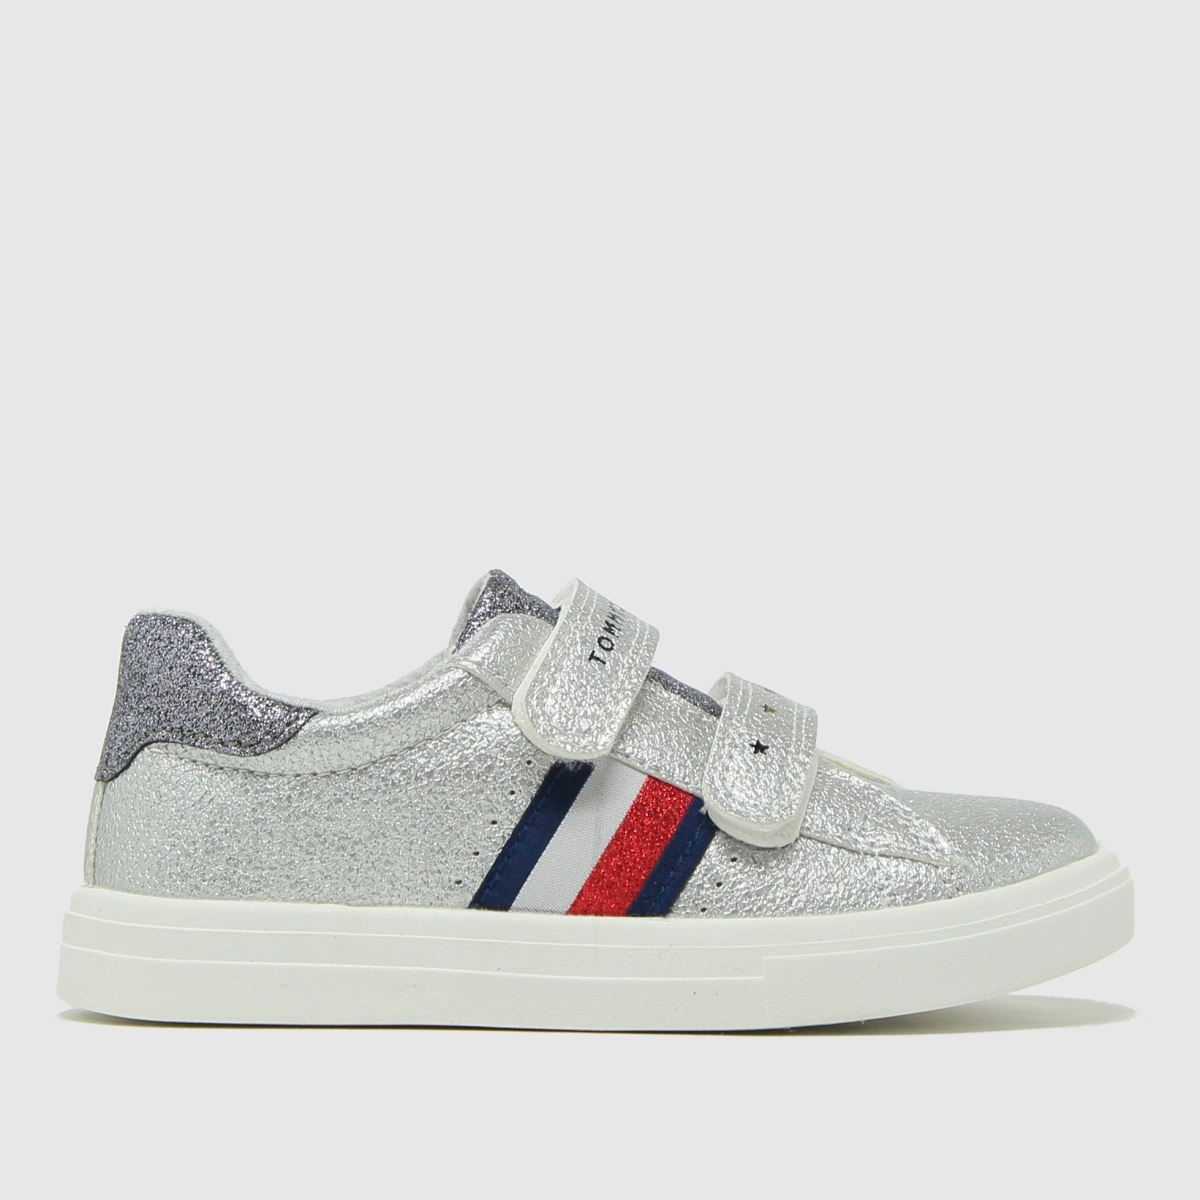 Tommy Hilfiger Silver Low Cut Velcro Sneaker Trainers Toddler